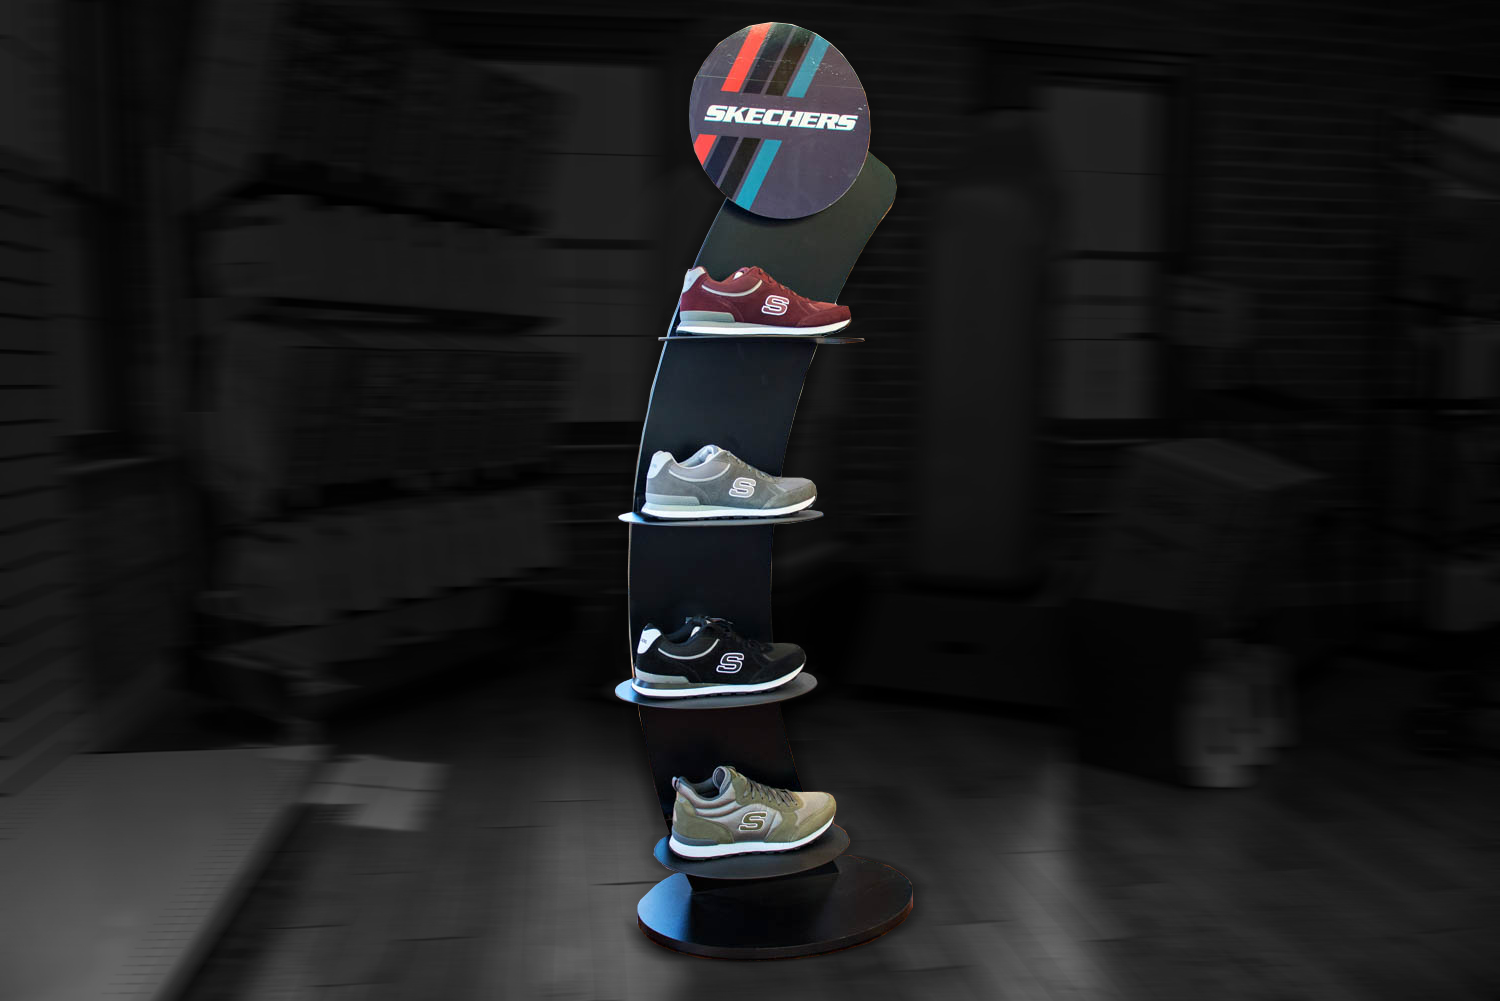 Skechers - Custom Point of Purchase Displays